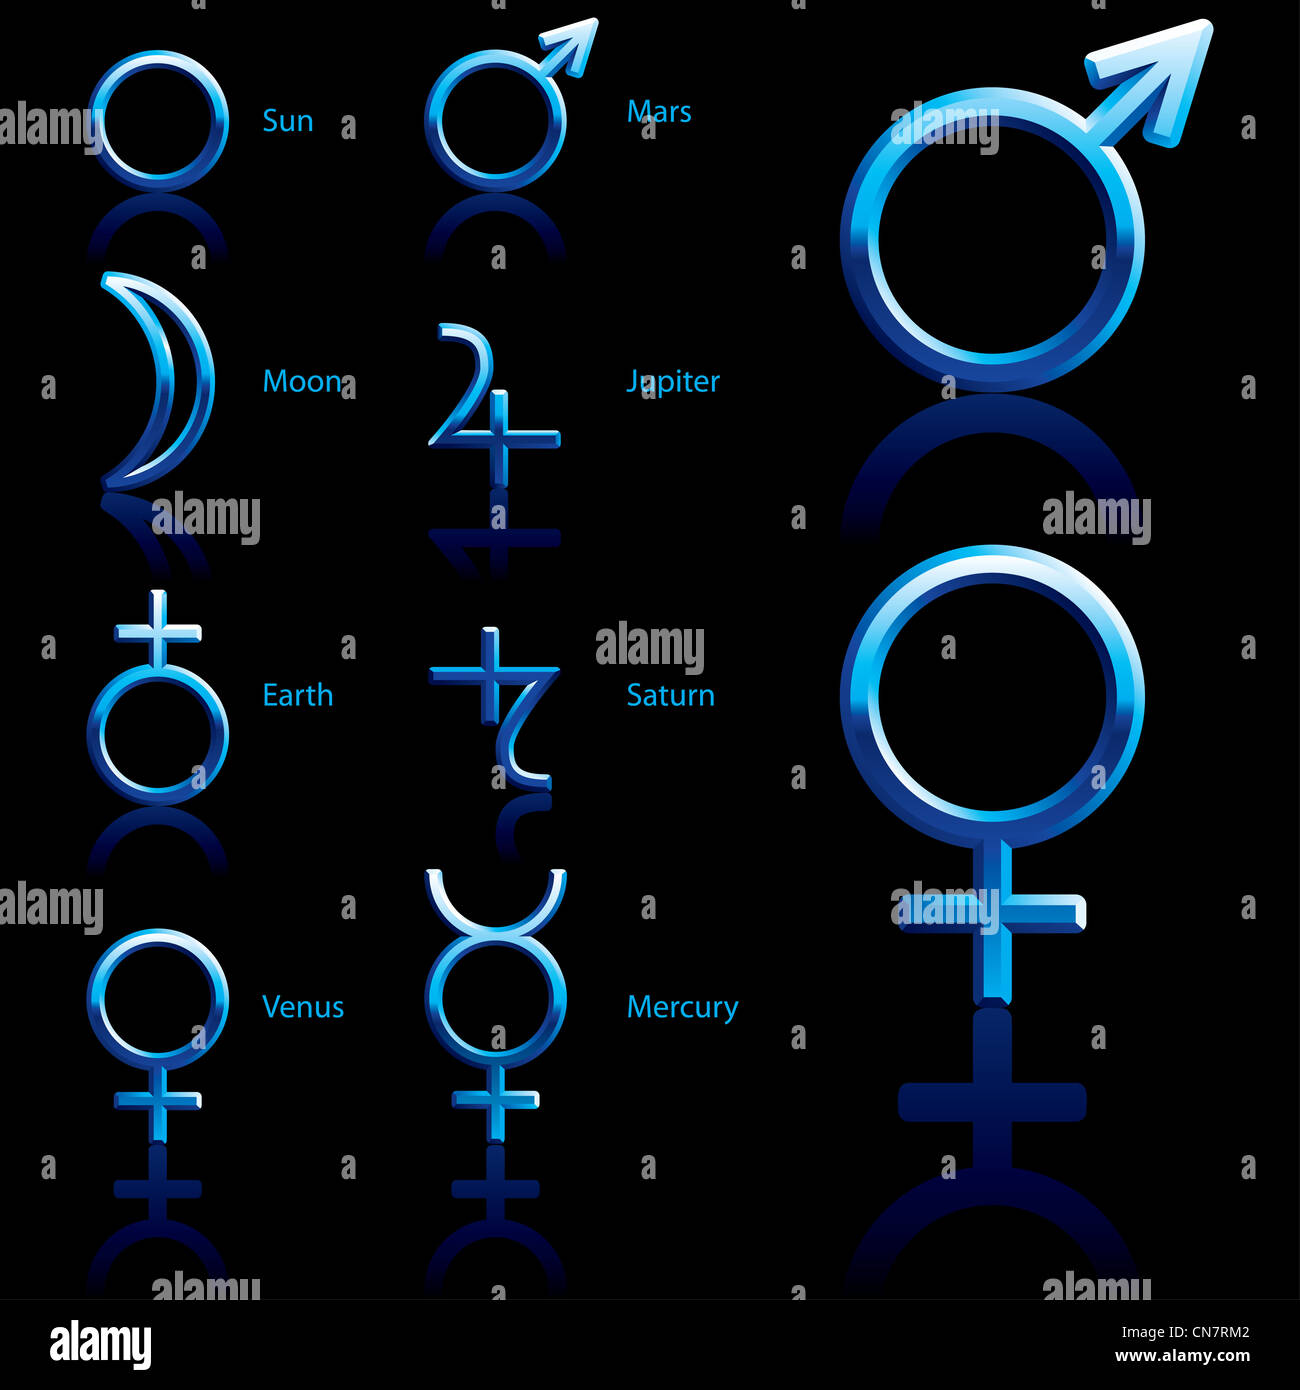 Zodiac and astrology symbols of the planets stock photo 47500770 zodiac and astrology symbols of the planets biocorpaavc Images